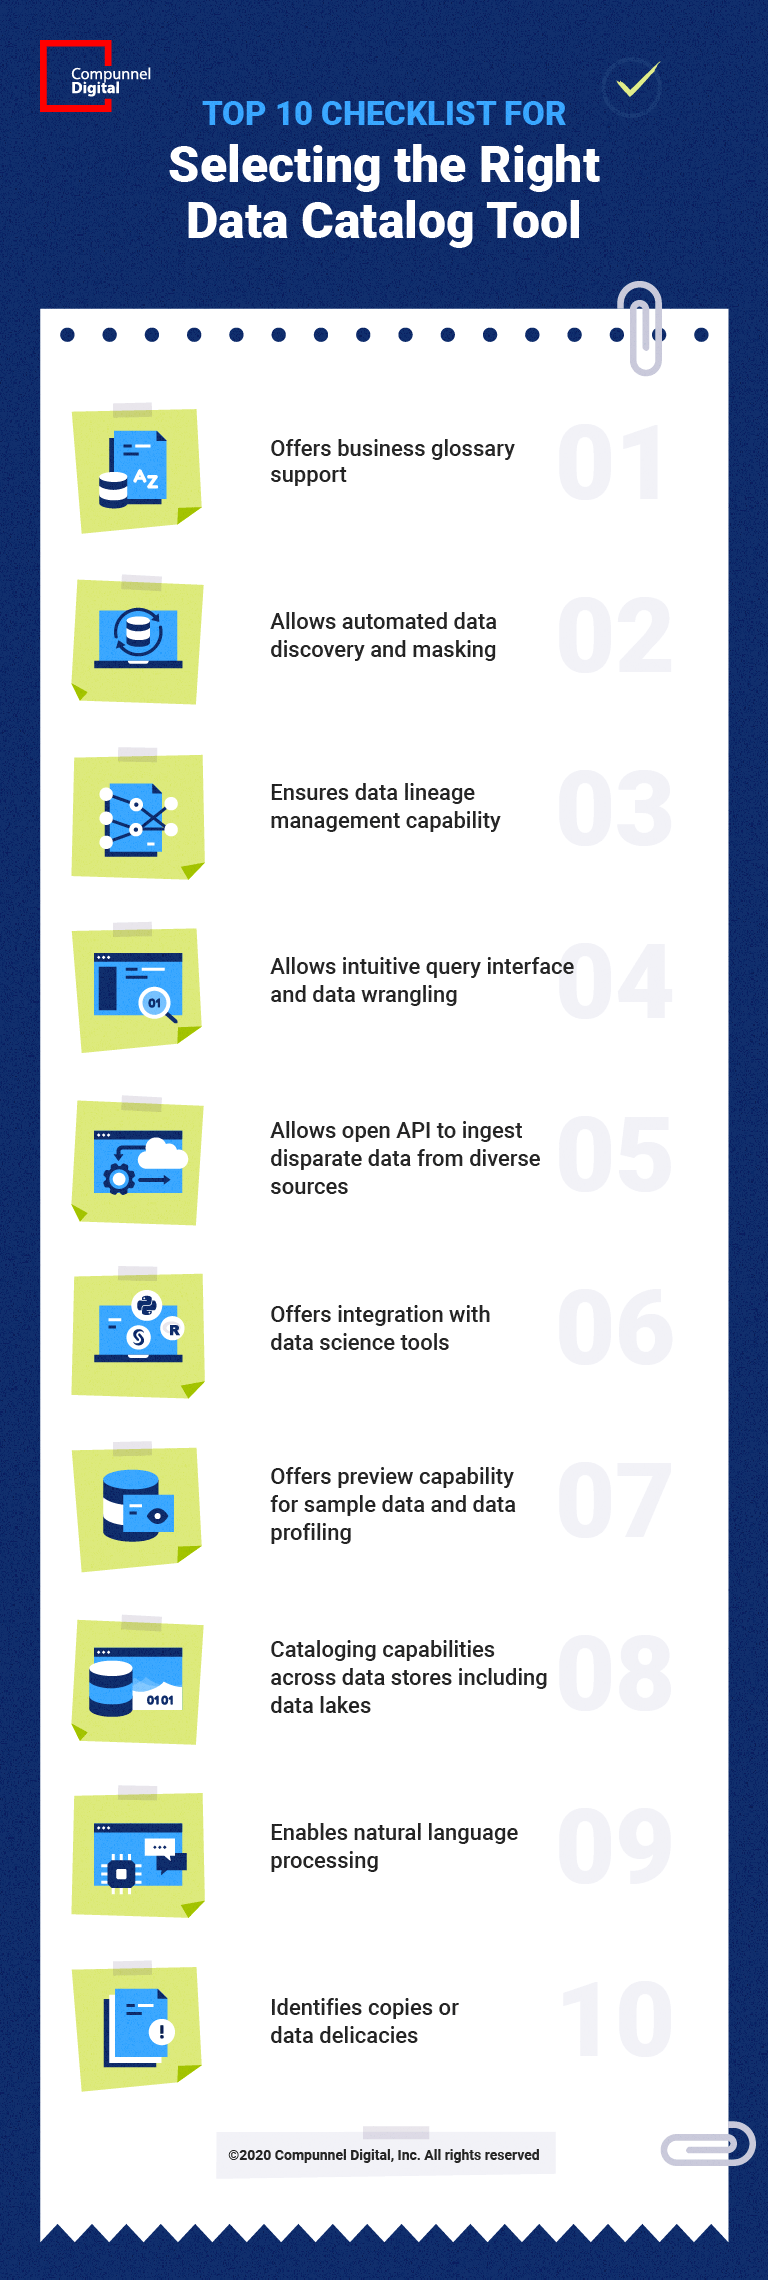 Top 10 Checklist for Selecting the Right Data Catalog Tool